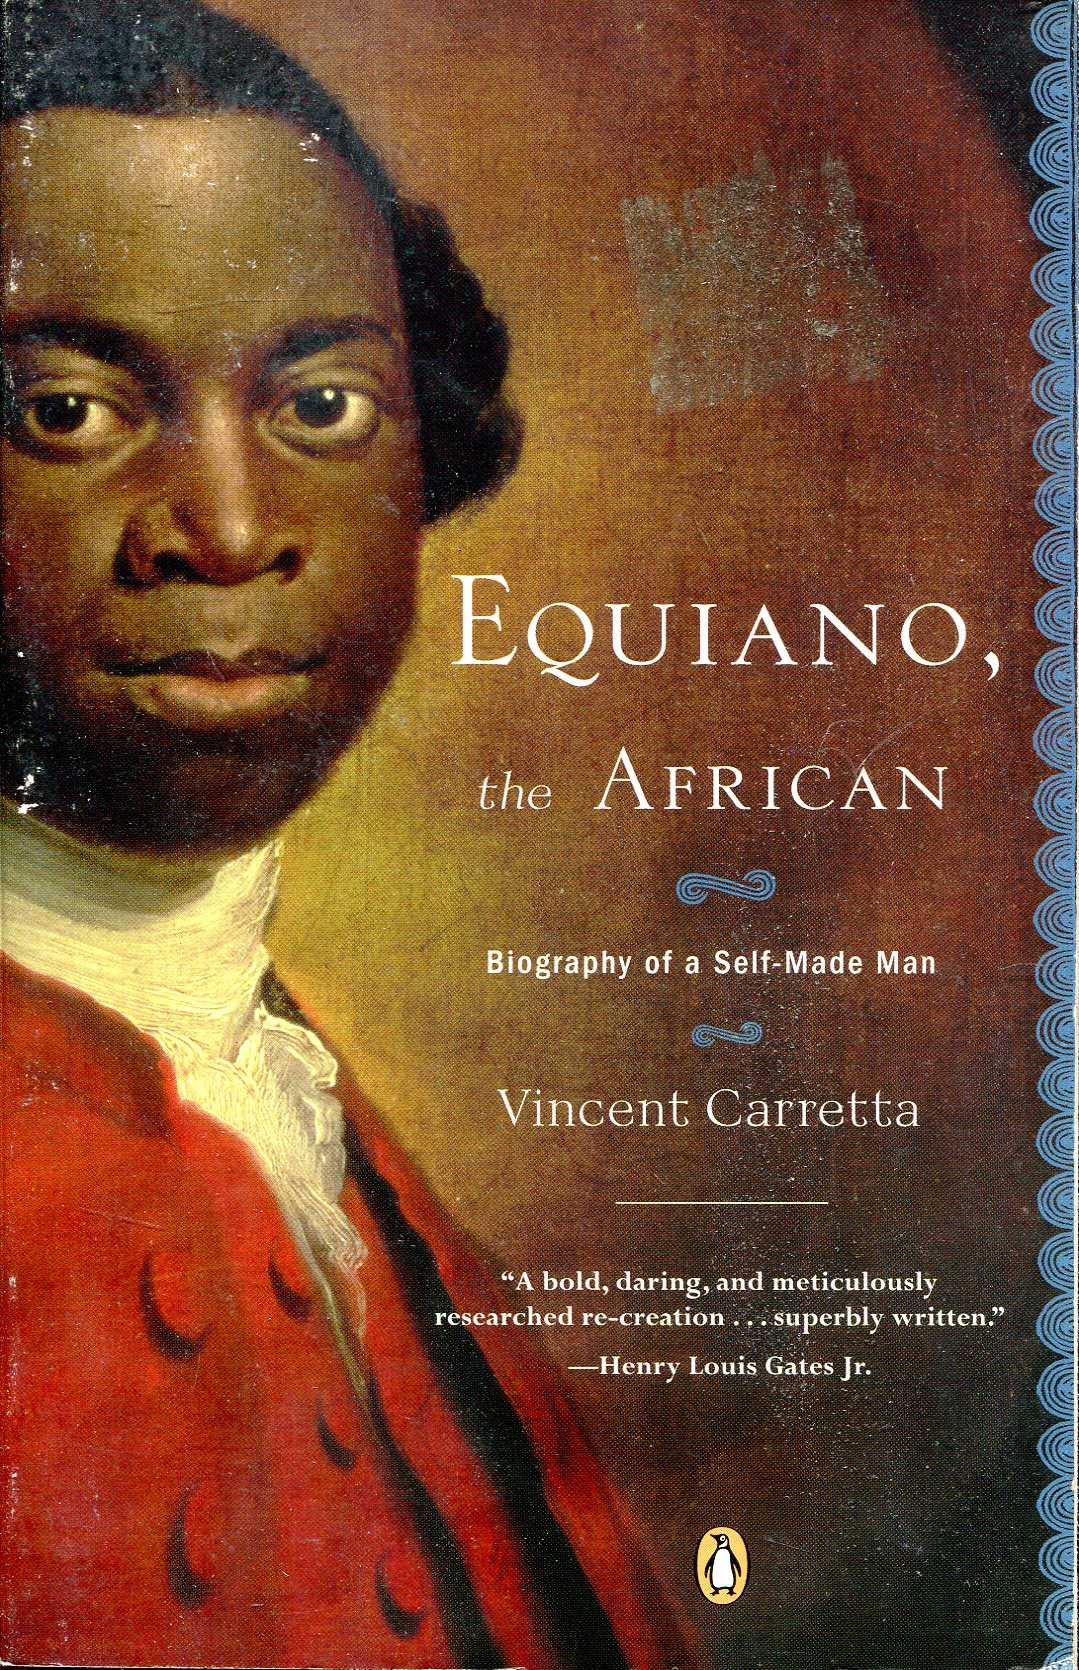 Image for Equiano, the African: Biography of a Self-Made Man